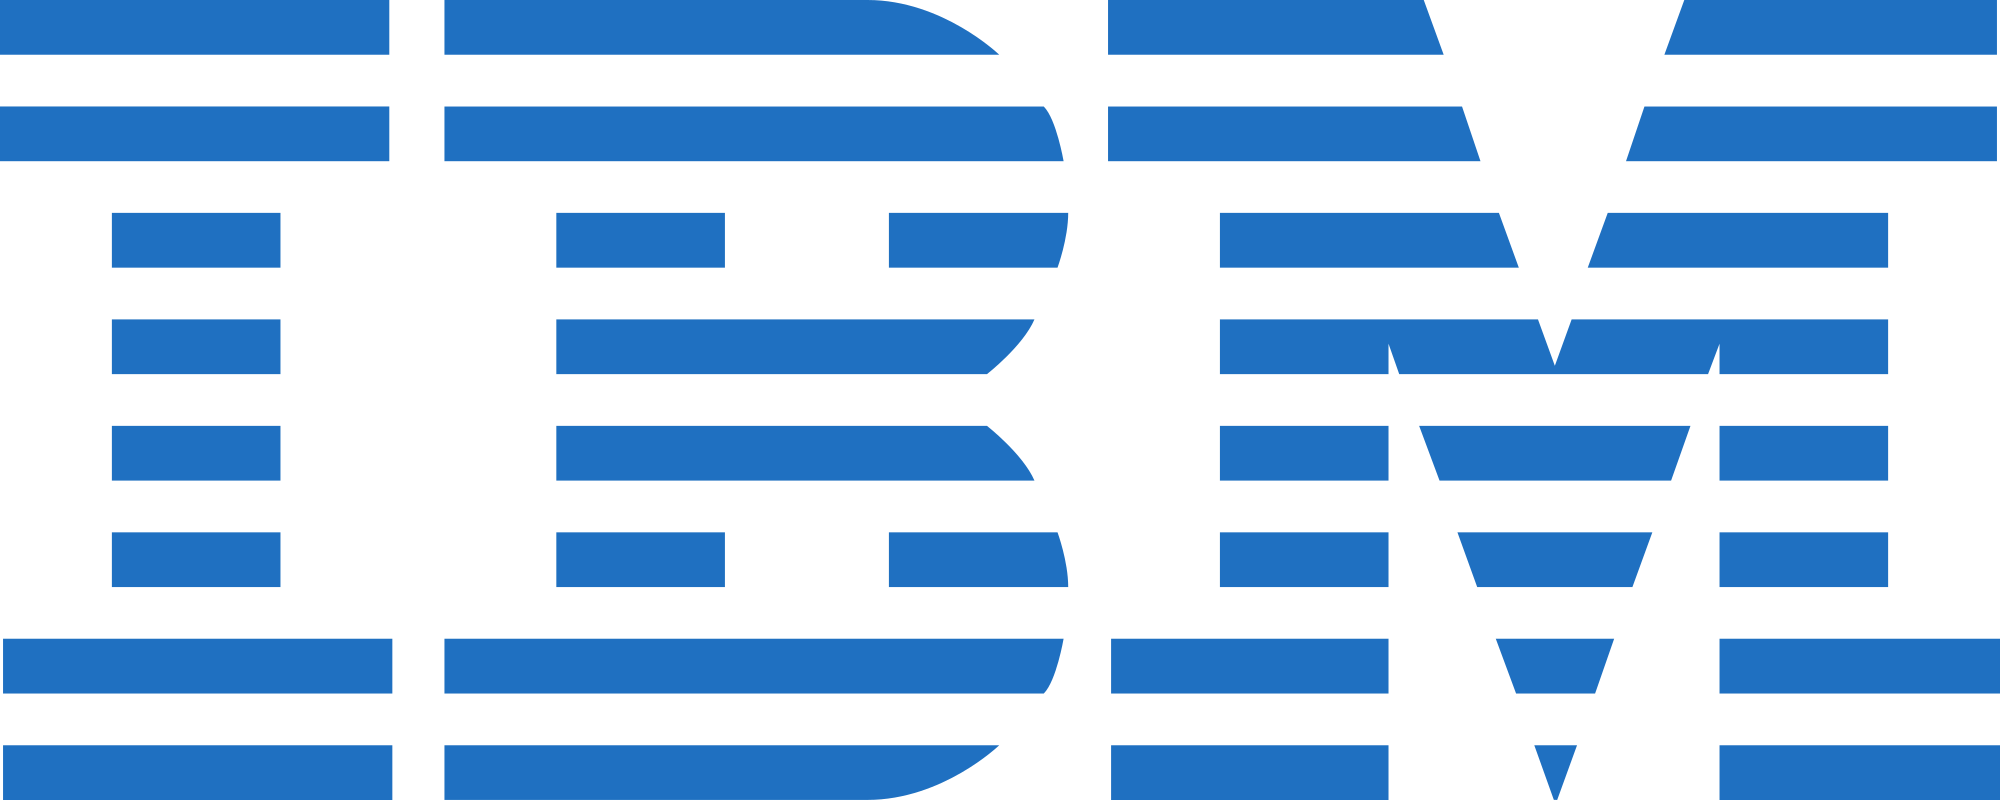 IBM configuration backup and restore